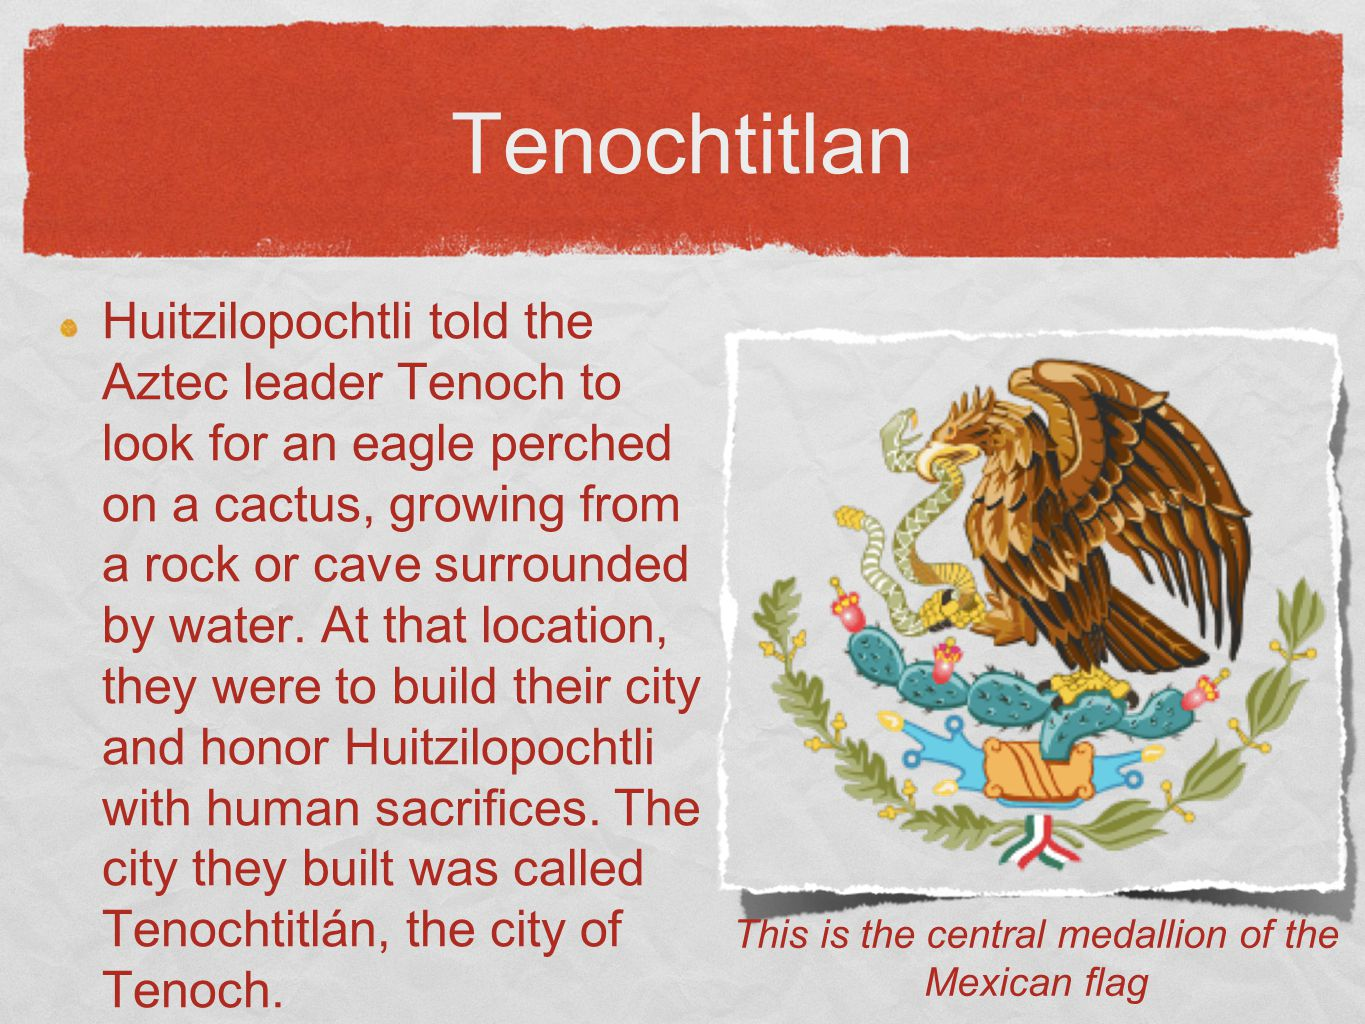 Tenochtitlan Huitzilopochtli told the Aztec leader Tenoch to look for an eagle perched on a cactus, growing from a rock or cave surrounded by water. A